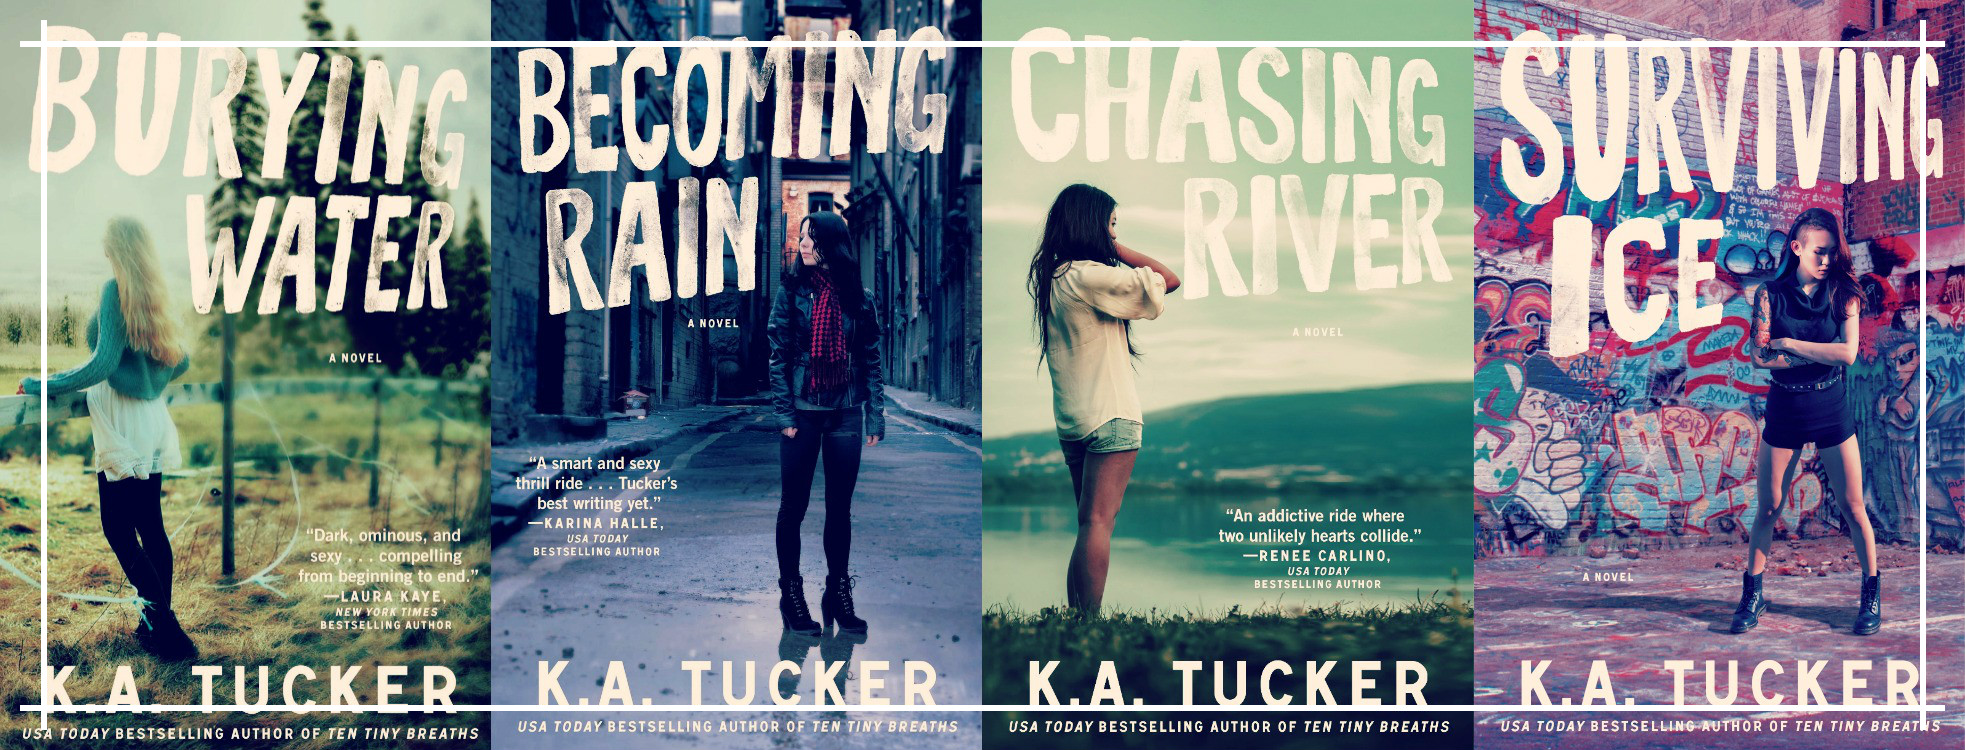 Burying Water Series - K. A. Tucker